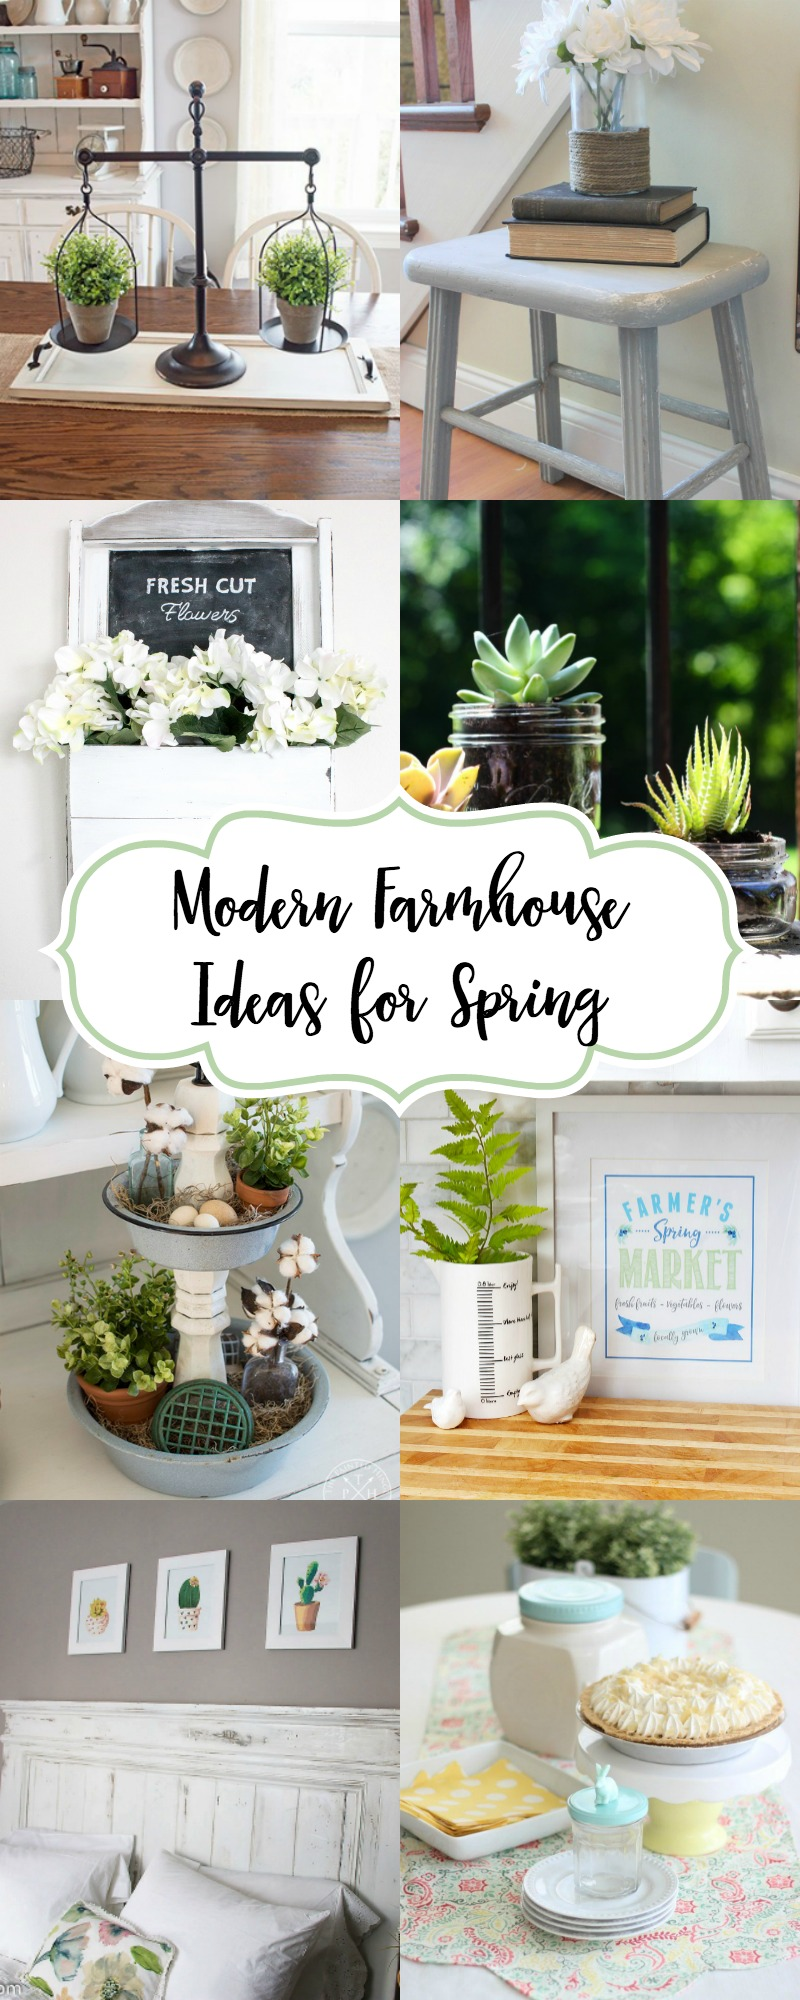 Modern Farmhouse Ideas for Spring